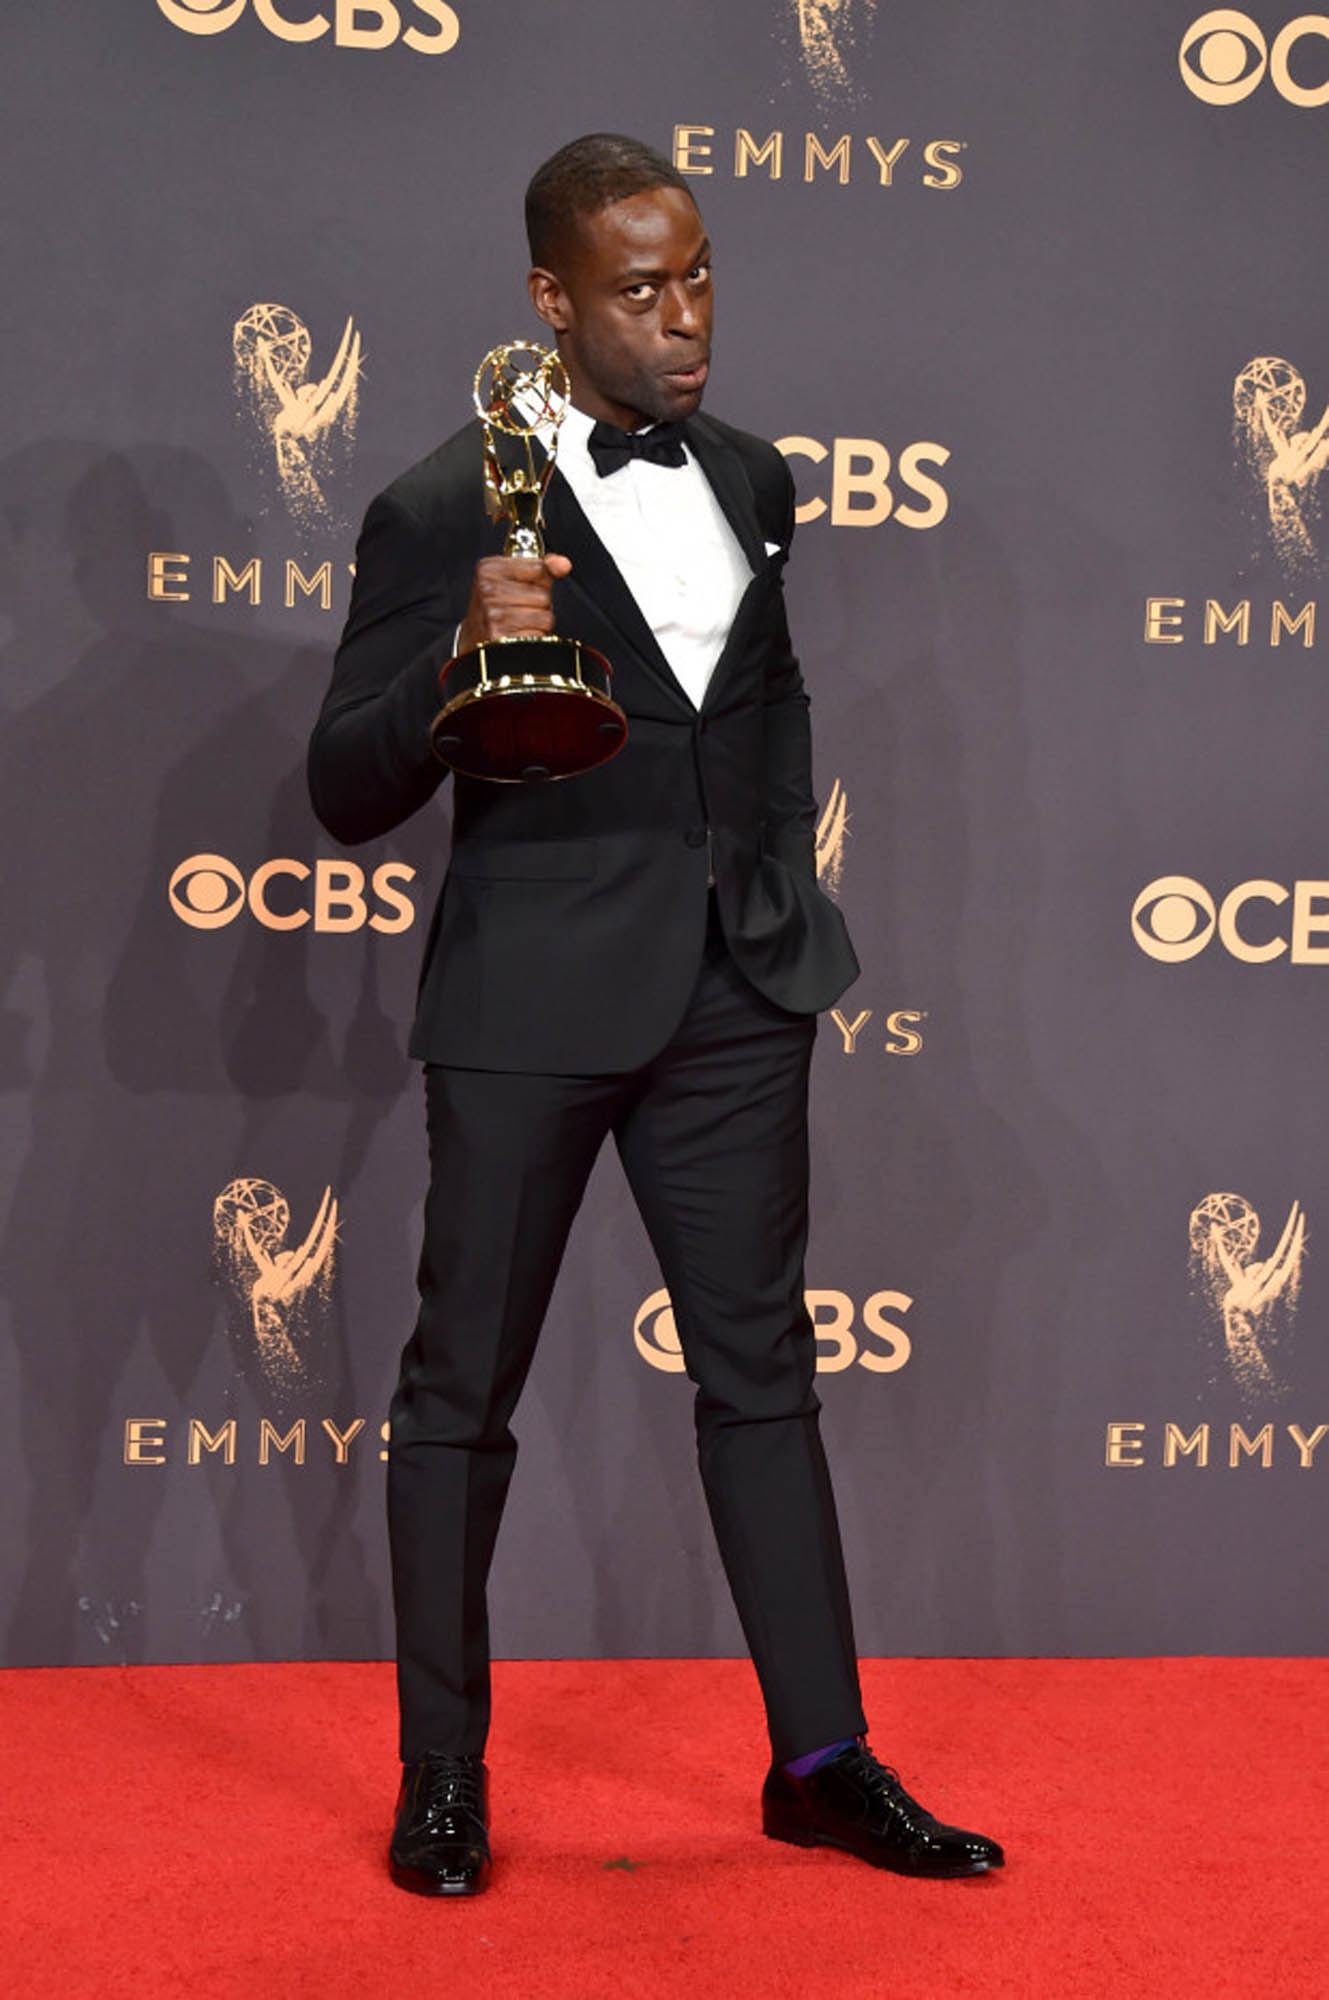 Styling Sterling Brown for the Emmy's 2017 Red Carpet